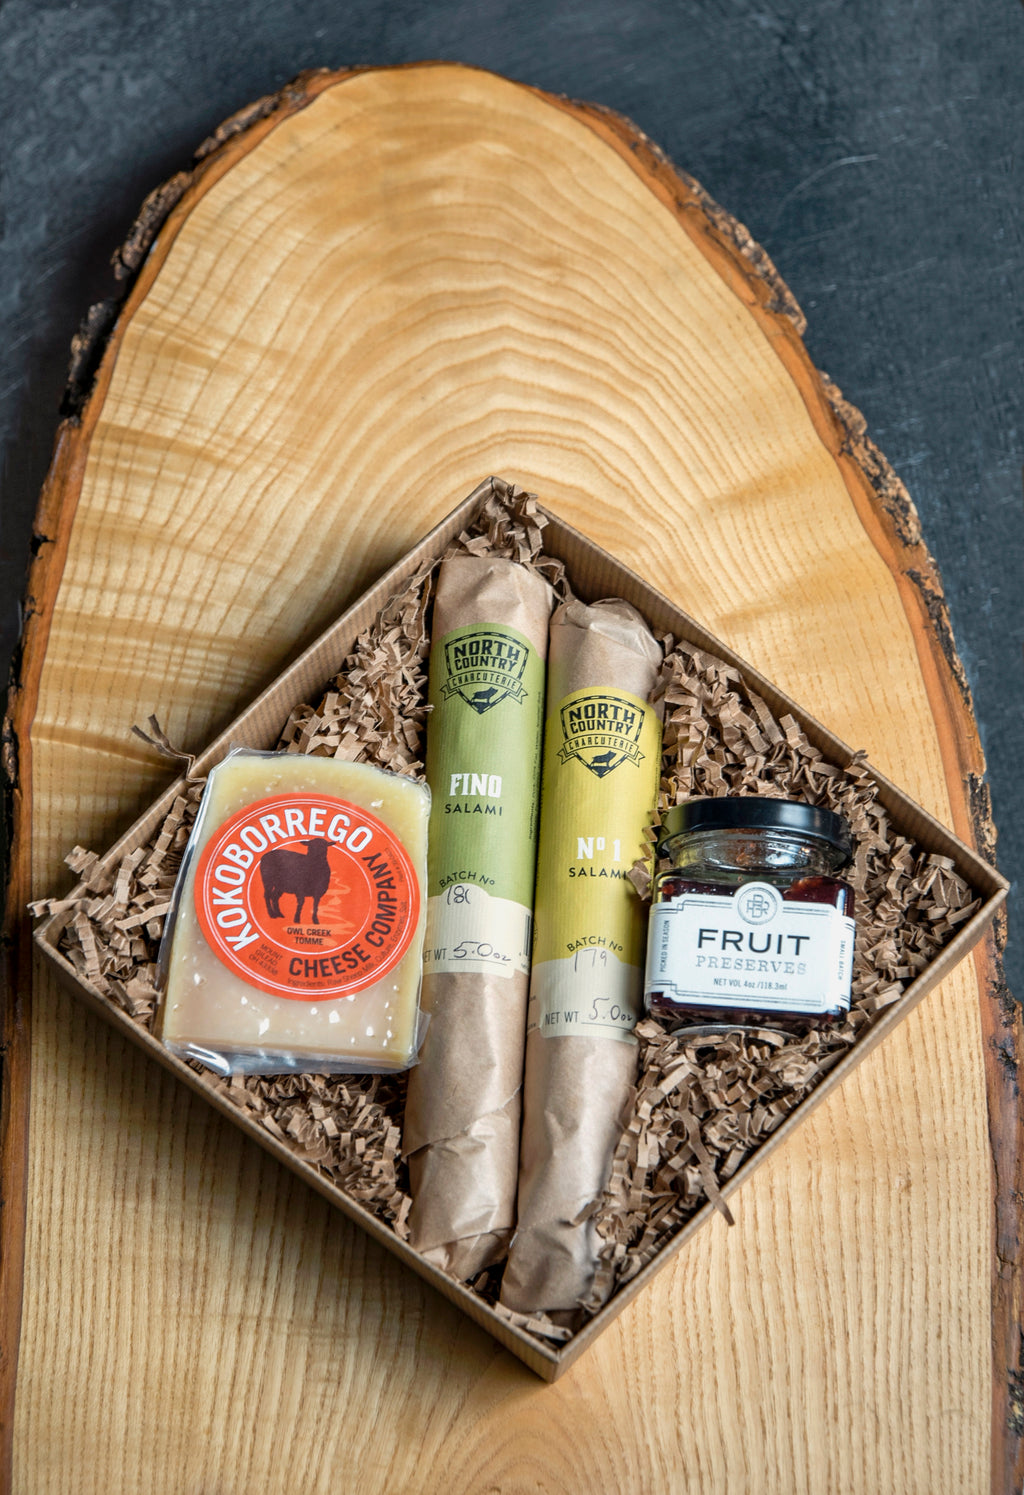 Salami-maker North Country Charcuterie navigating Covid-19 with new products and partnerships